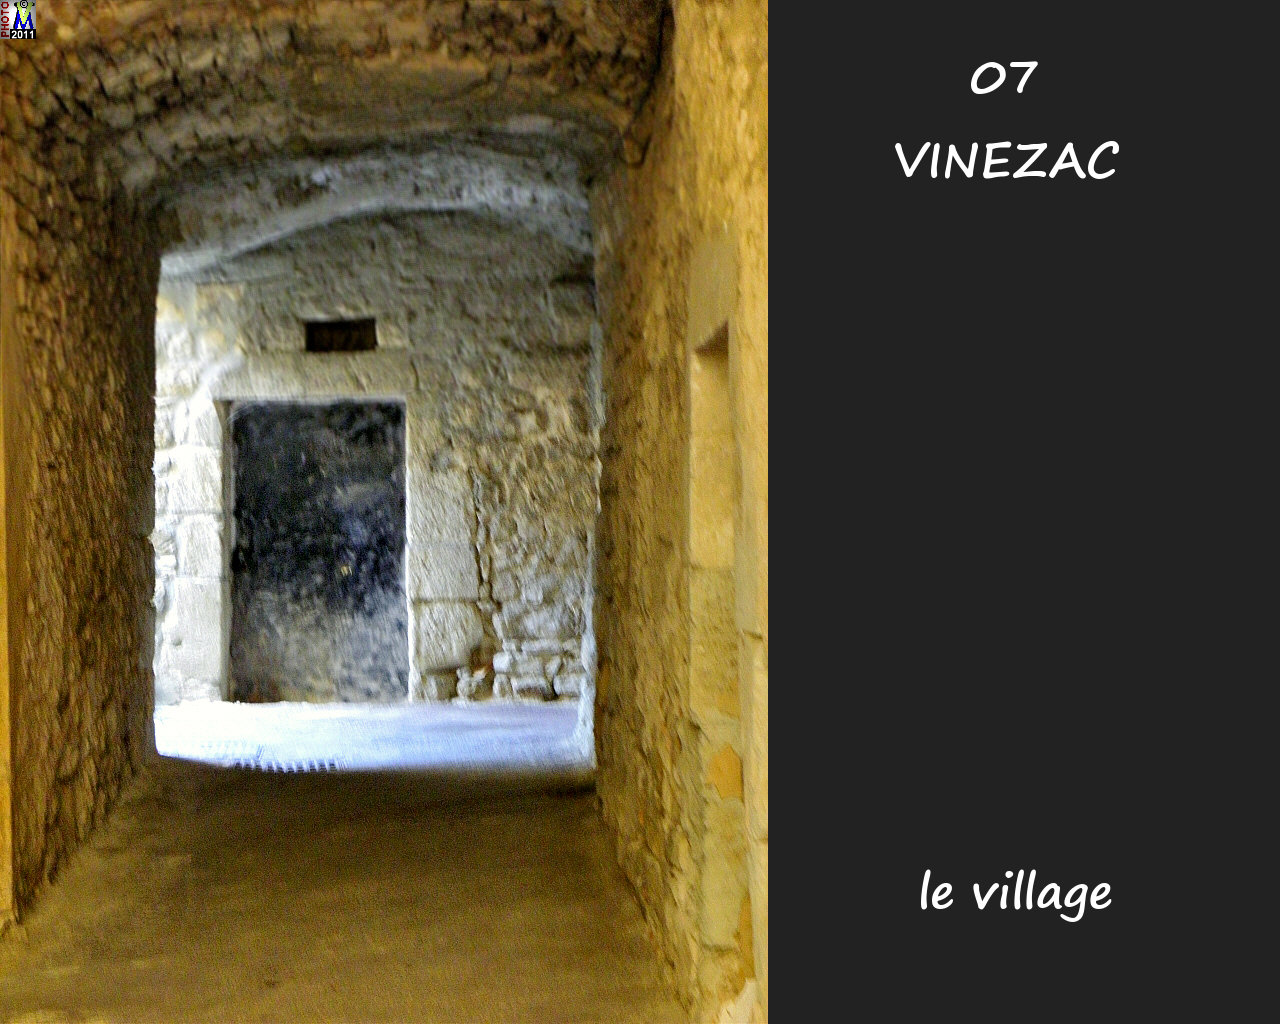 07VINEZAC_village_128.jpg